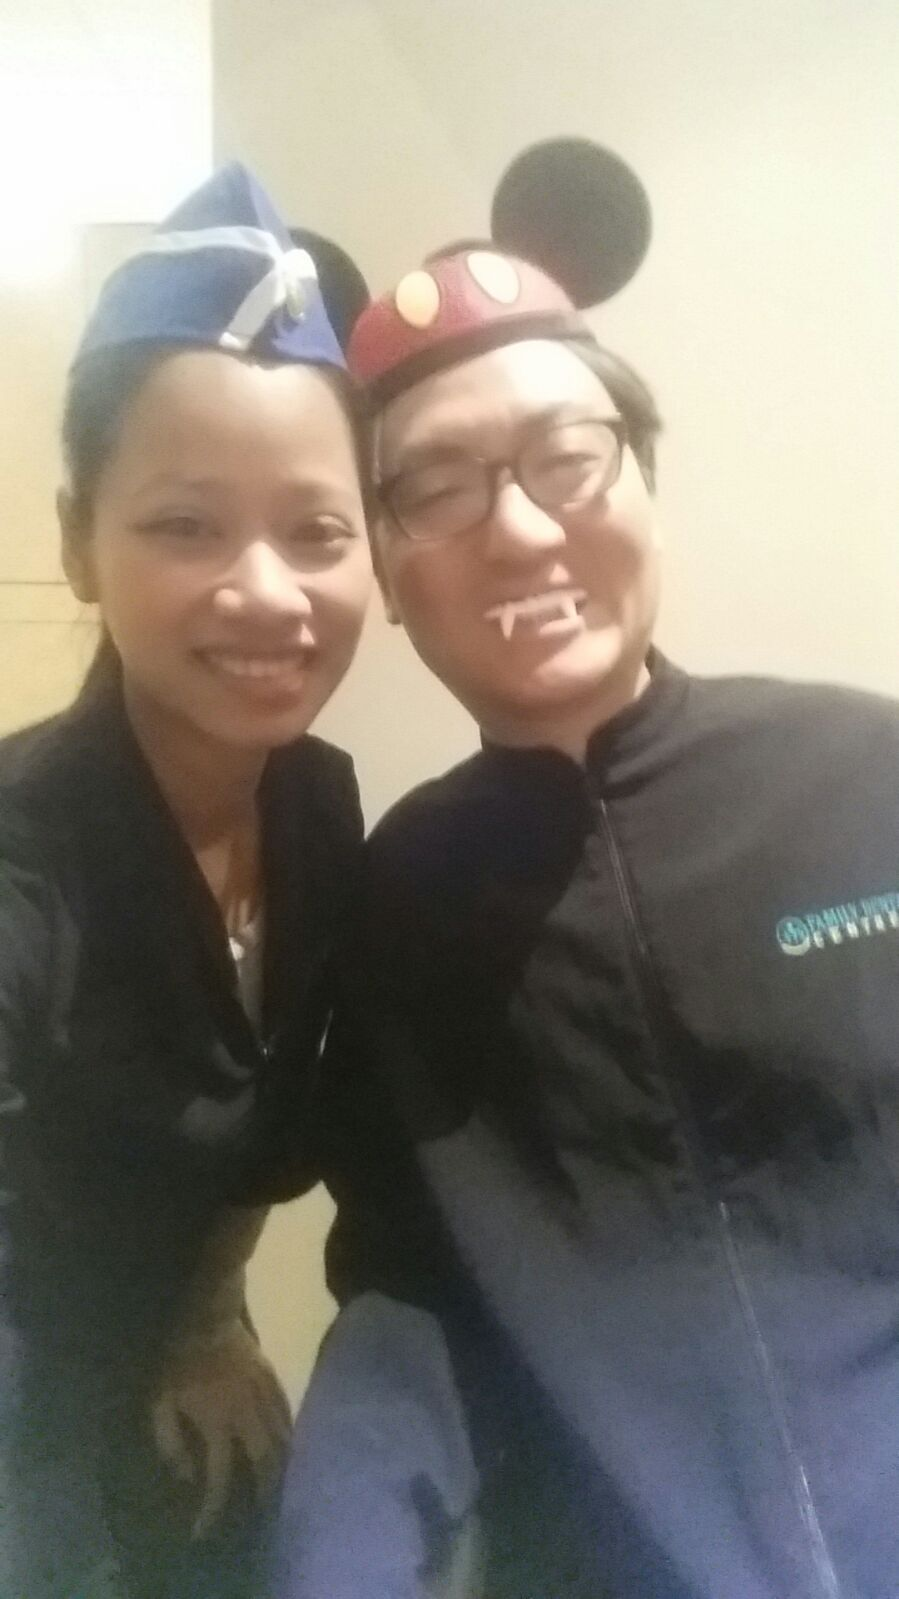 Dr Shin and Panja all dressed up for Halloween at Madison Centre Family Dental in Burnaby